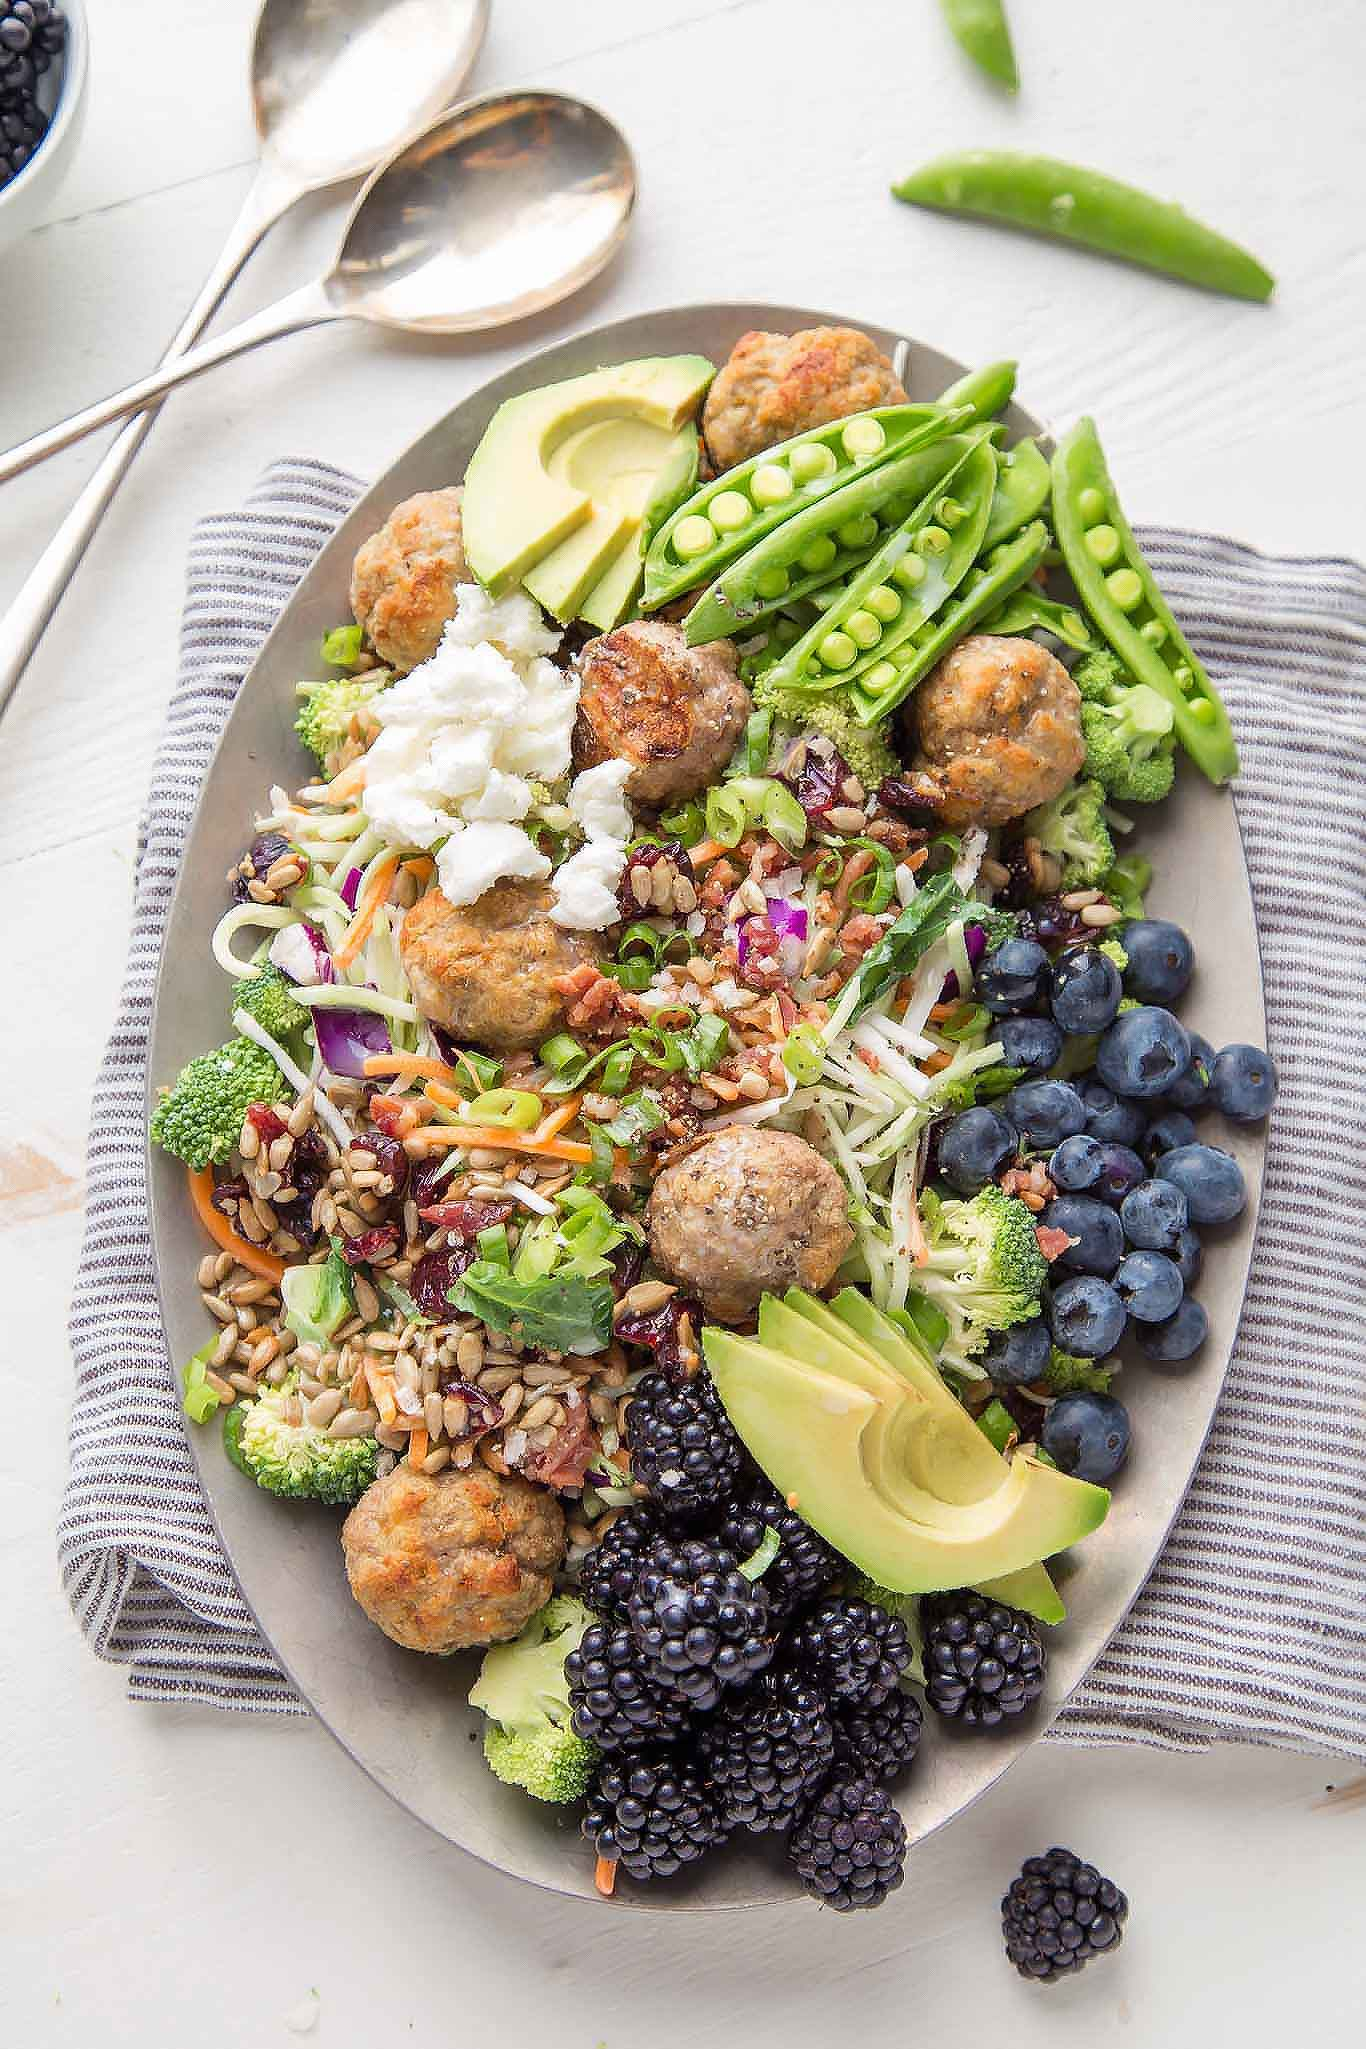 This Turkey Meatball Chopped Salad is loaded with veggies and topped with grilled fresh blackberries, blueberries, avocado and goat cheese. | platingsandpairings.com